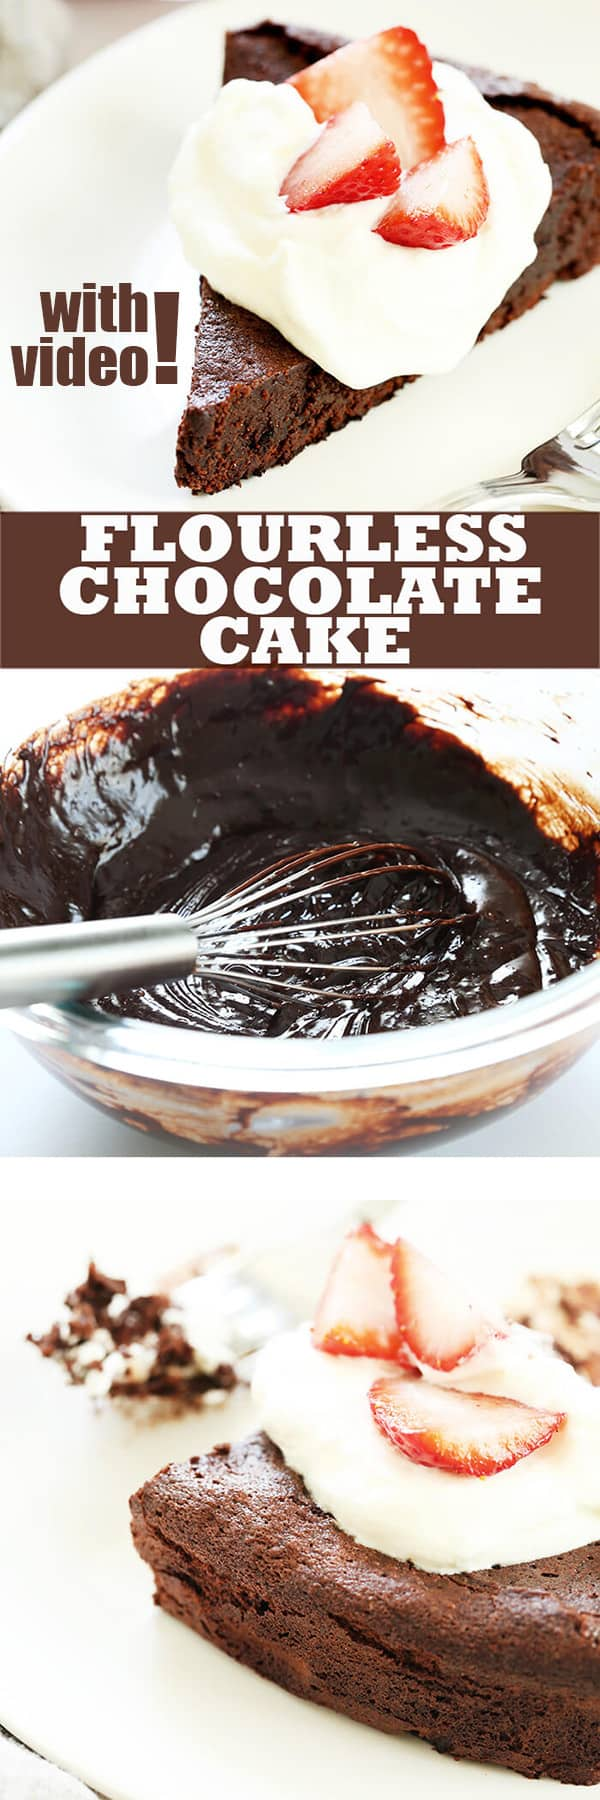 A flourless chocolate cake is one of those restaurant-style desserts that it's tempting to think is too fussy to make at home. It's naturally gluten free, and easy to whip one up at home any time.